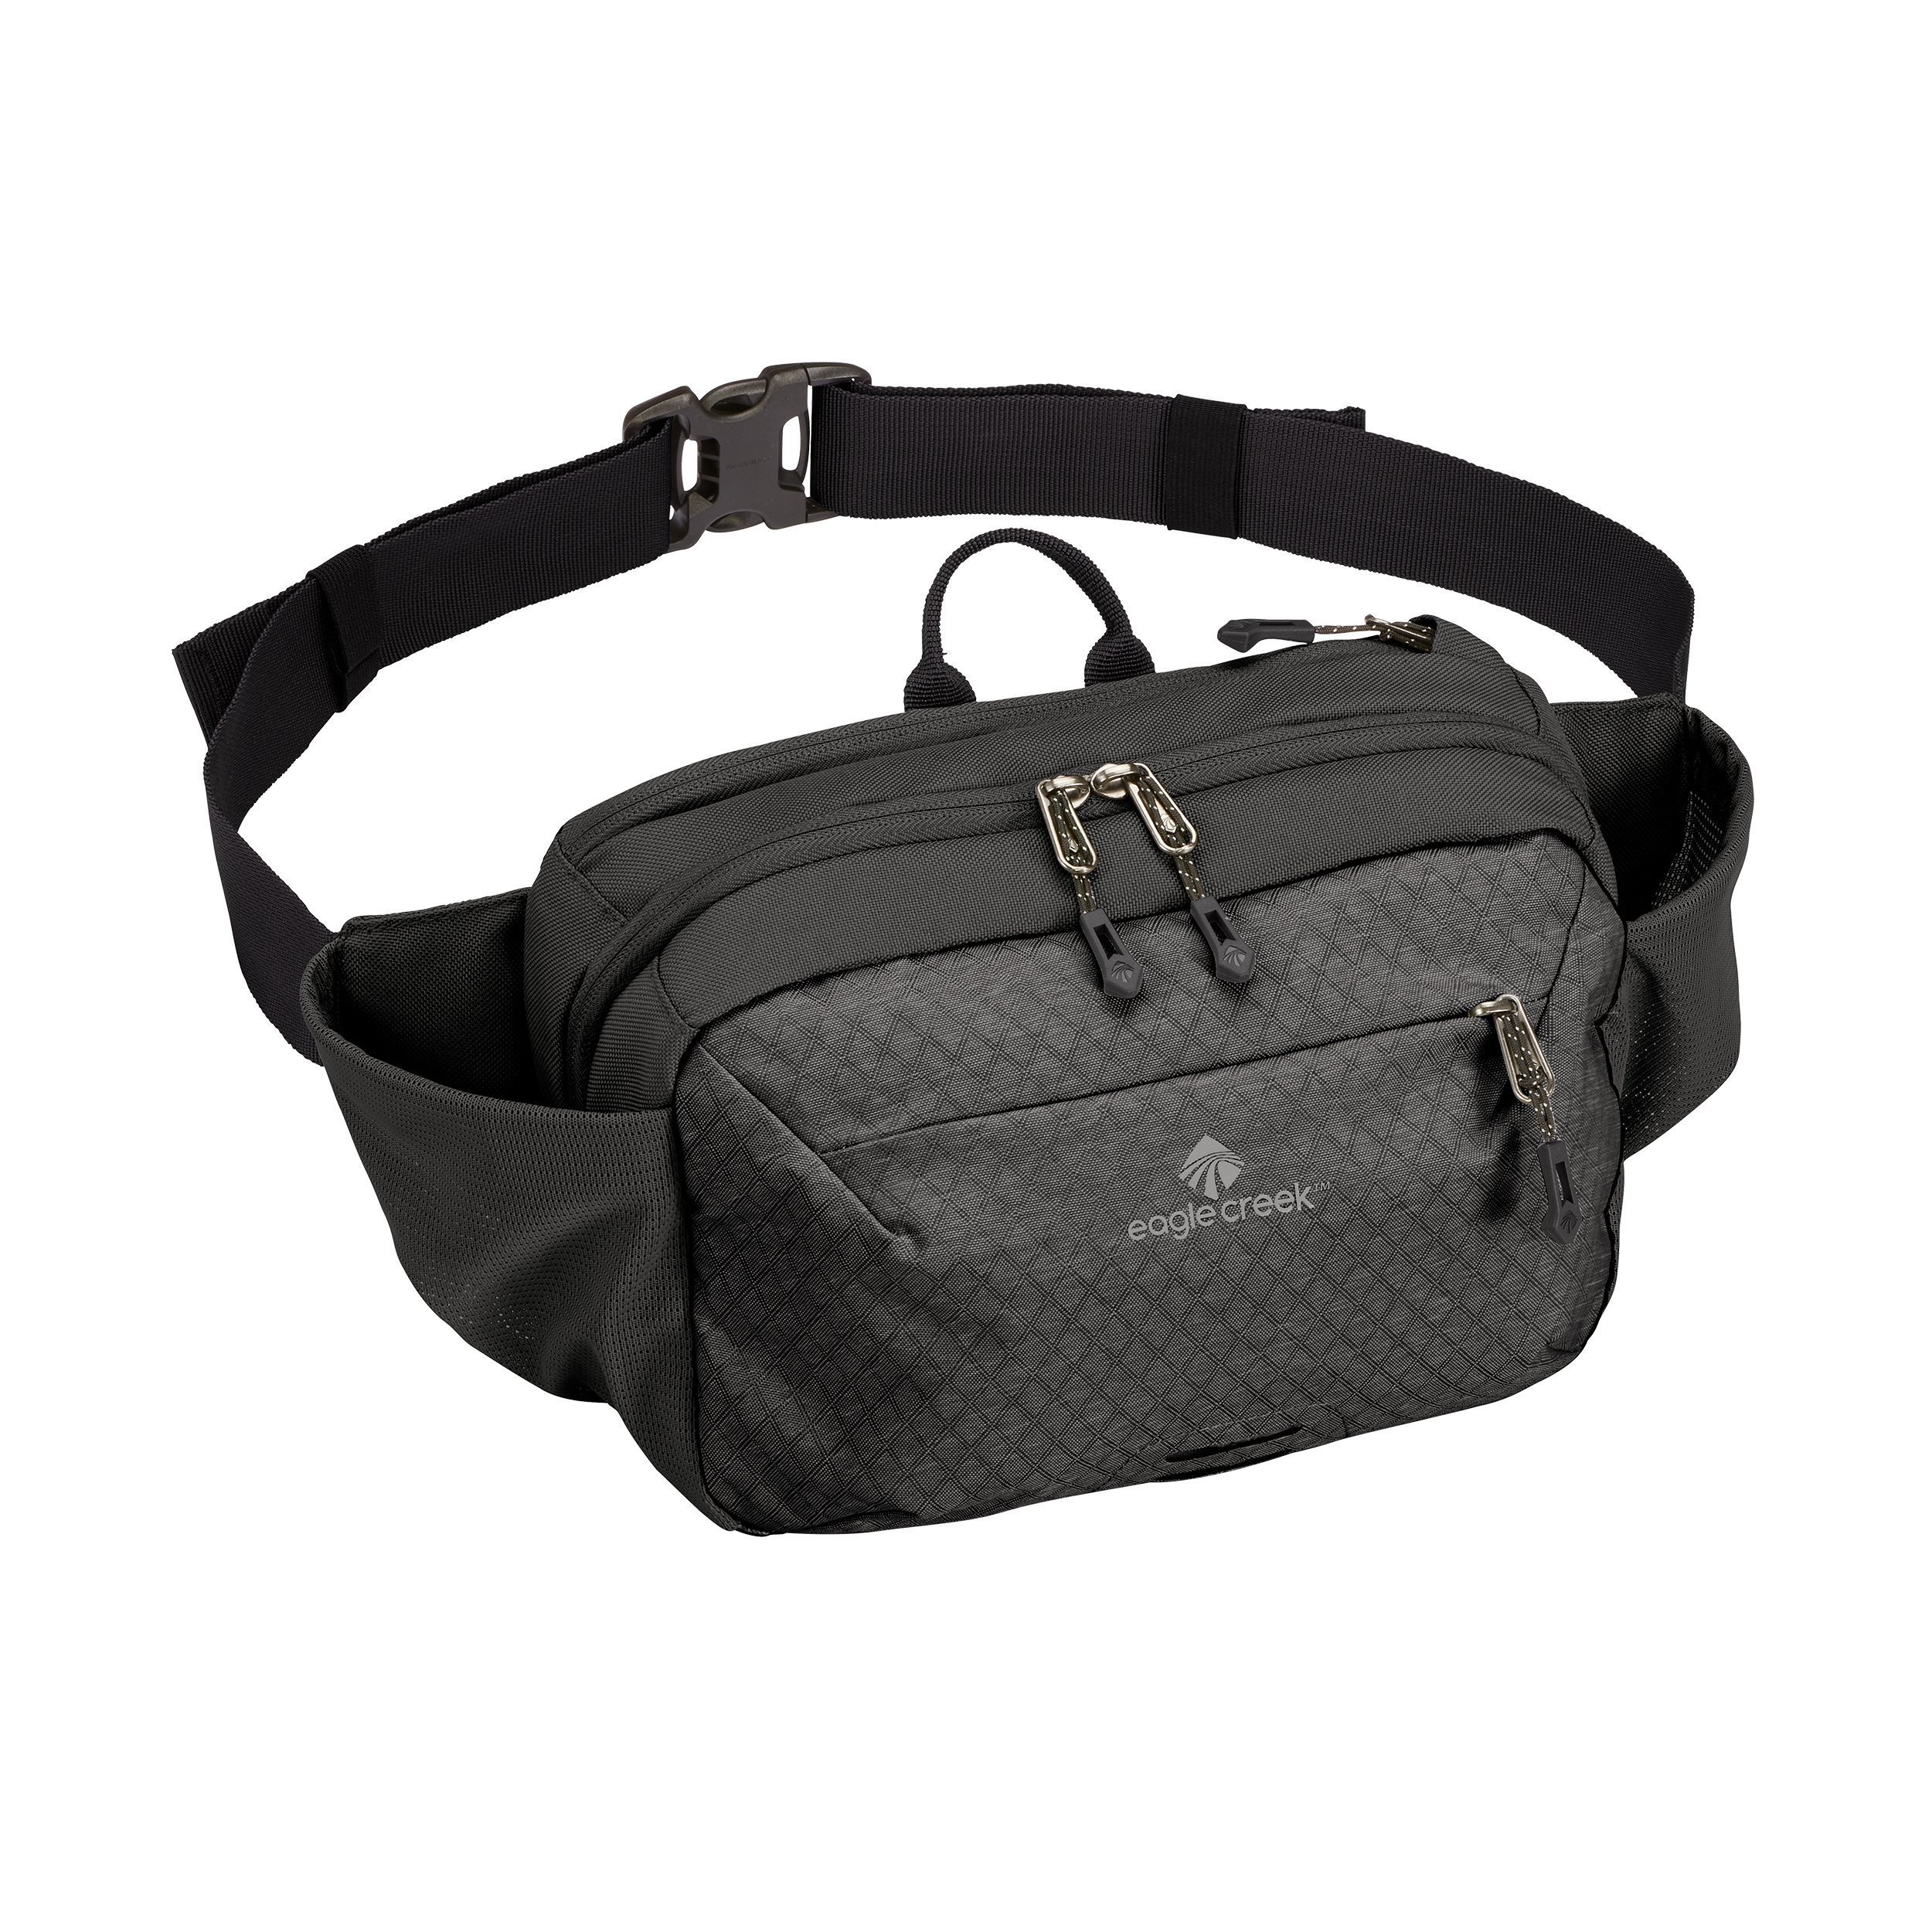 Eagle Creek Wayfinder Waist Pack Multiuse Fanny Pack for Travel Sport Waist Pack for Tablet and Phone Passport Wallet, Black/Charcoal